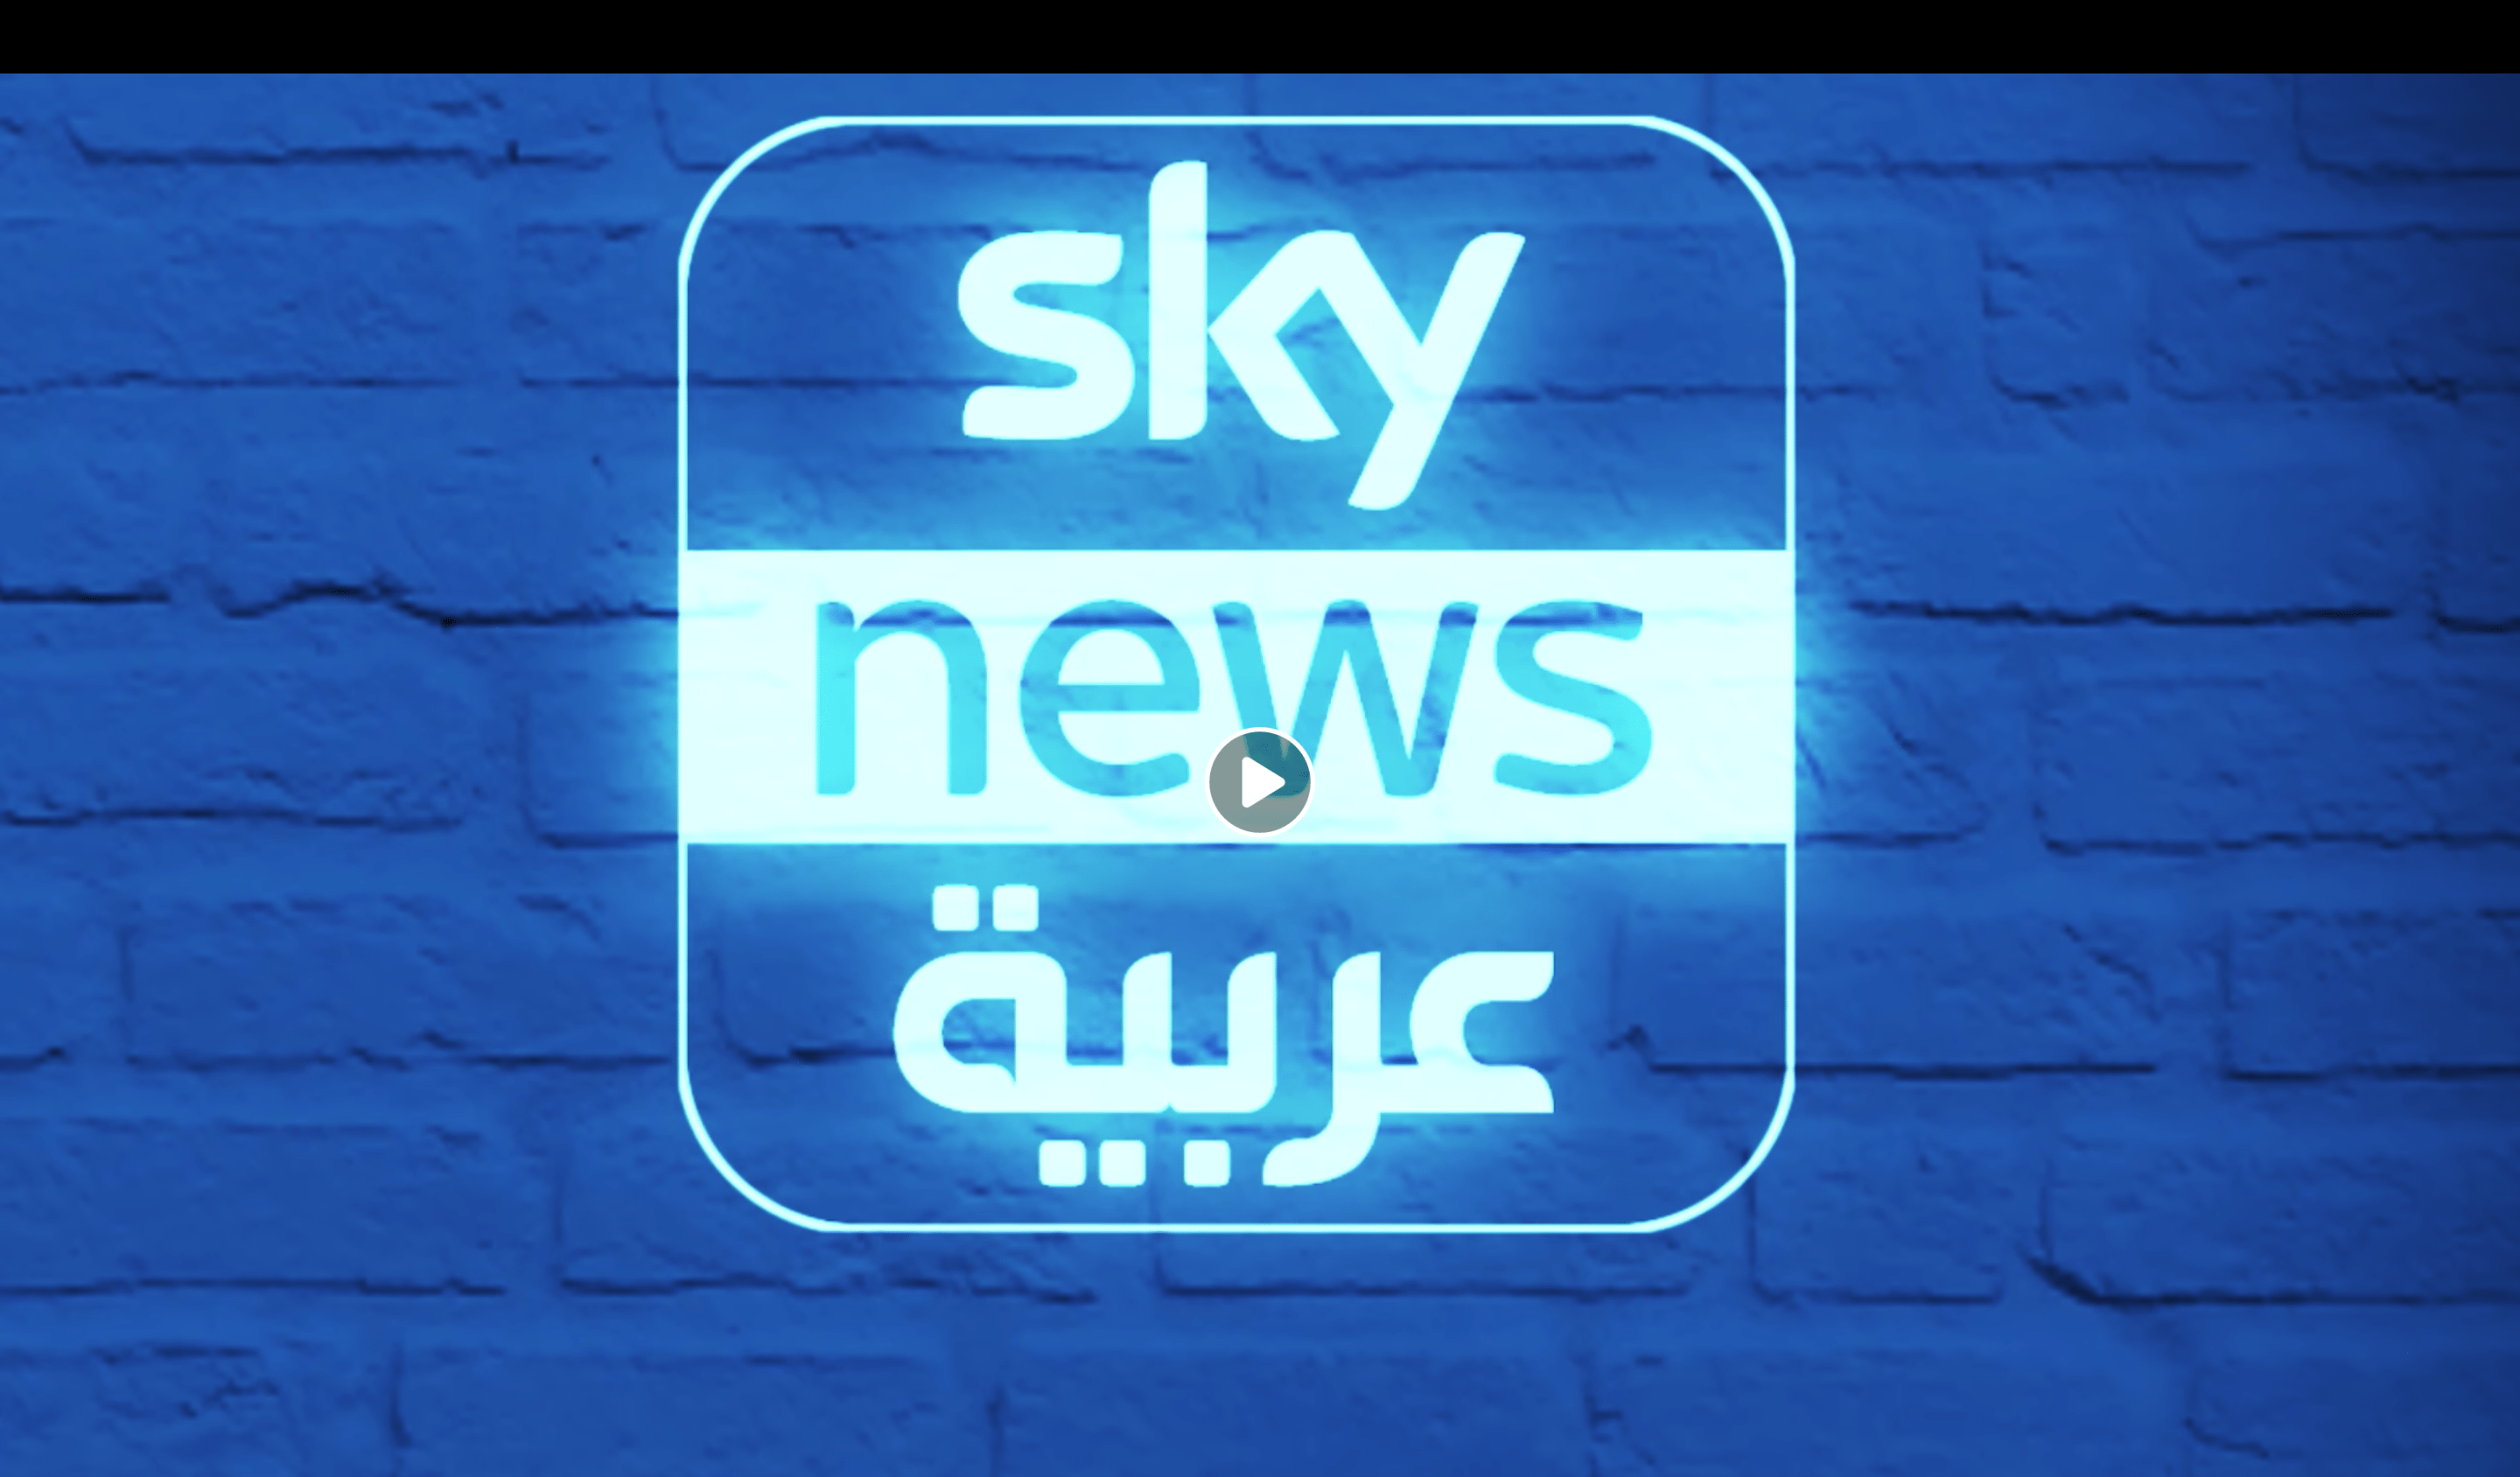 sky-news-arabia-introduces-fresh-content-in-the-mena-region